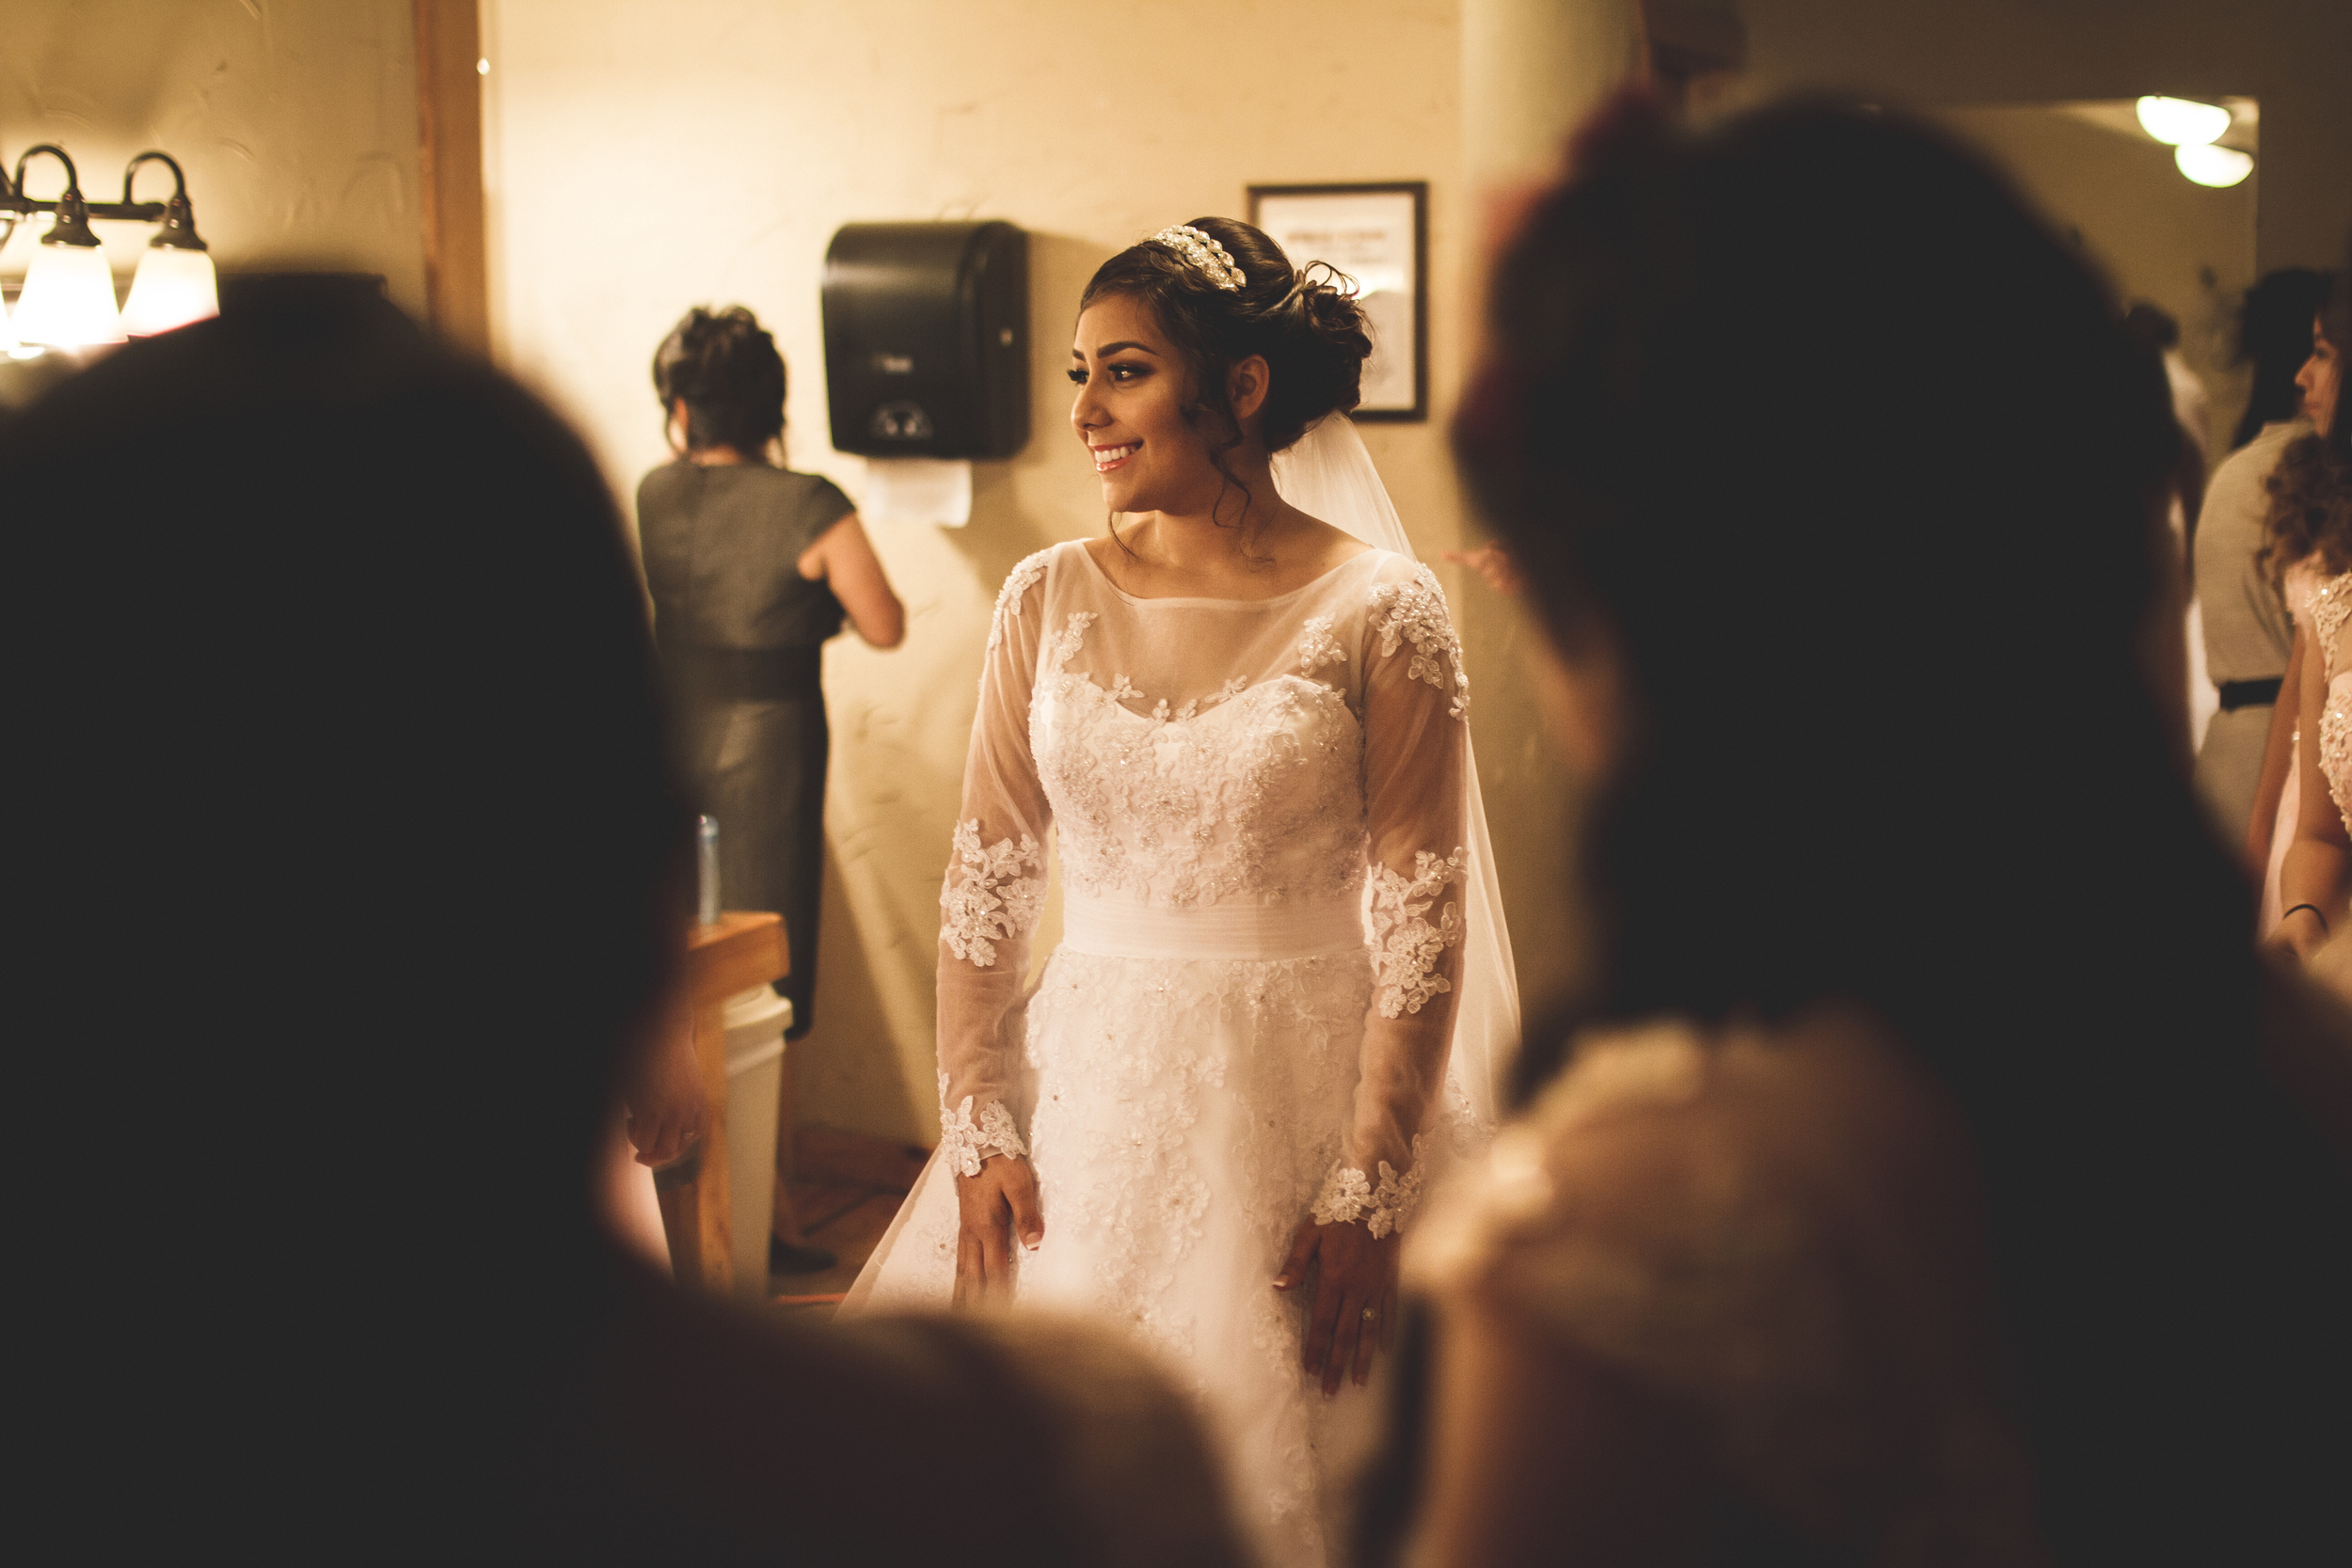 We had an amazing time traveling out to Kyle, Texas just south of Austin to shoot this lovely wedding. This is one of my favorite movements I captured right as Crystal saw herself in her dress for the first time on the day of her wedding.